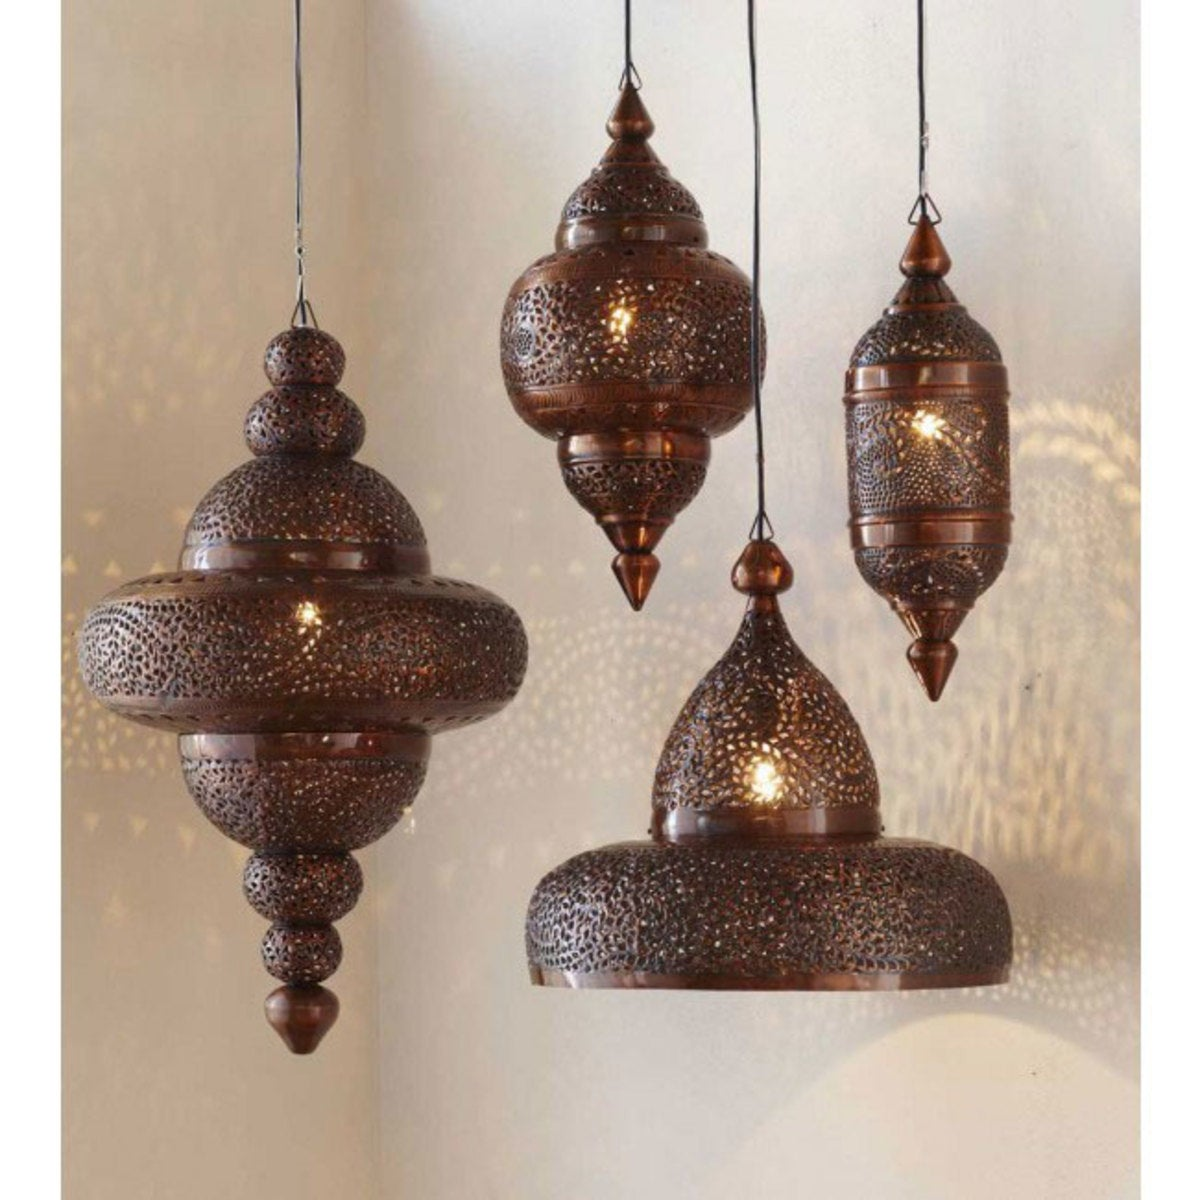 Moroccan Hanging Lamp Collection - Antique Copper